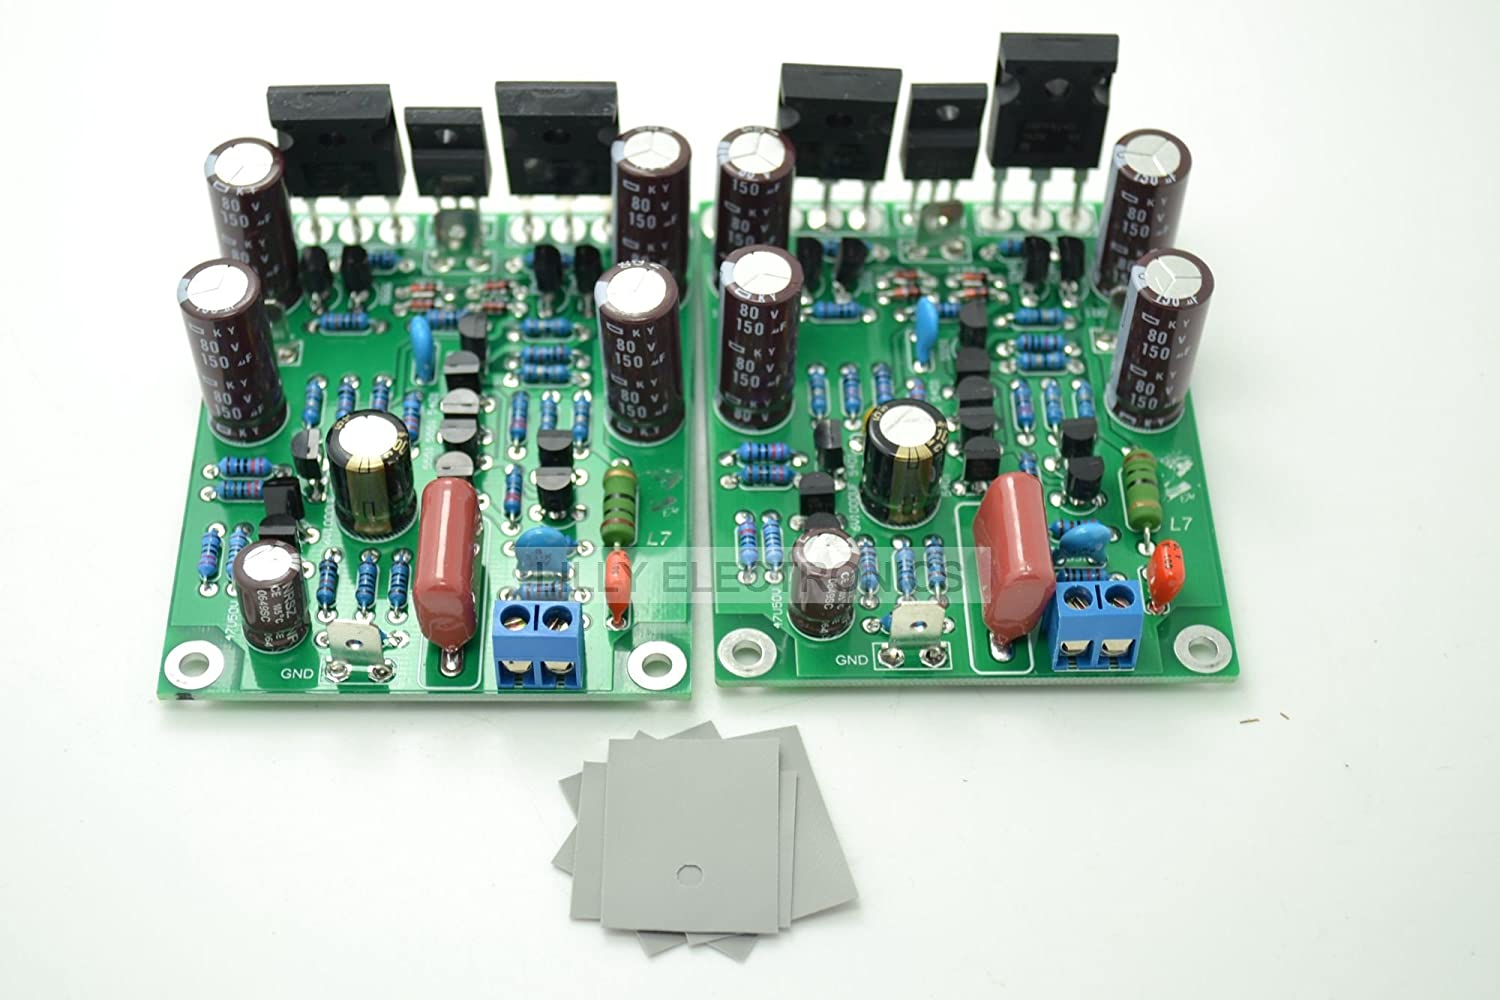 Q Baihe L7 Mosfet Dual Channel Power Audio Amplifier 100w Circuit Board High Speed Field Effect Using German Vishay Irfp240 Irfp9240 Output